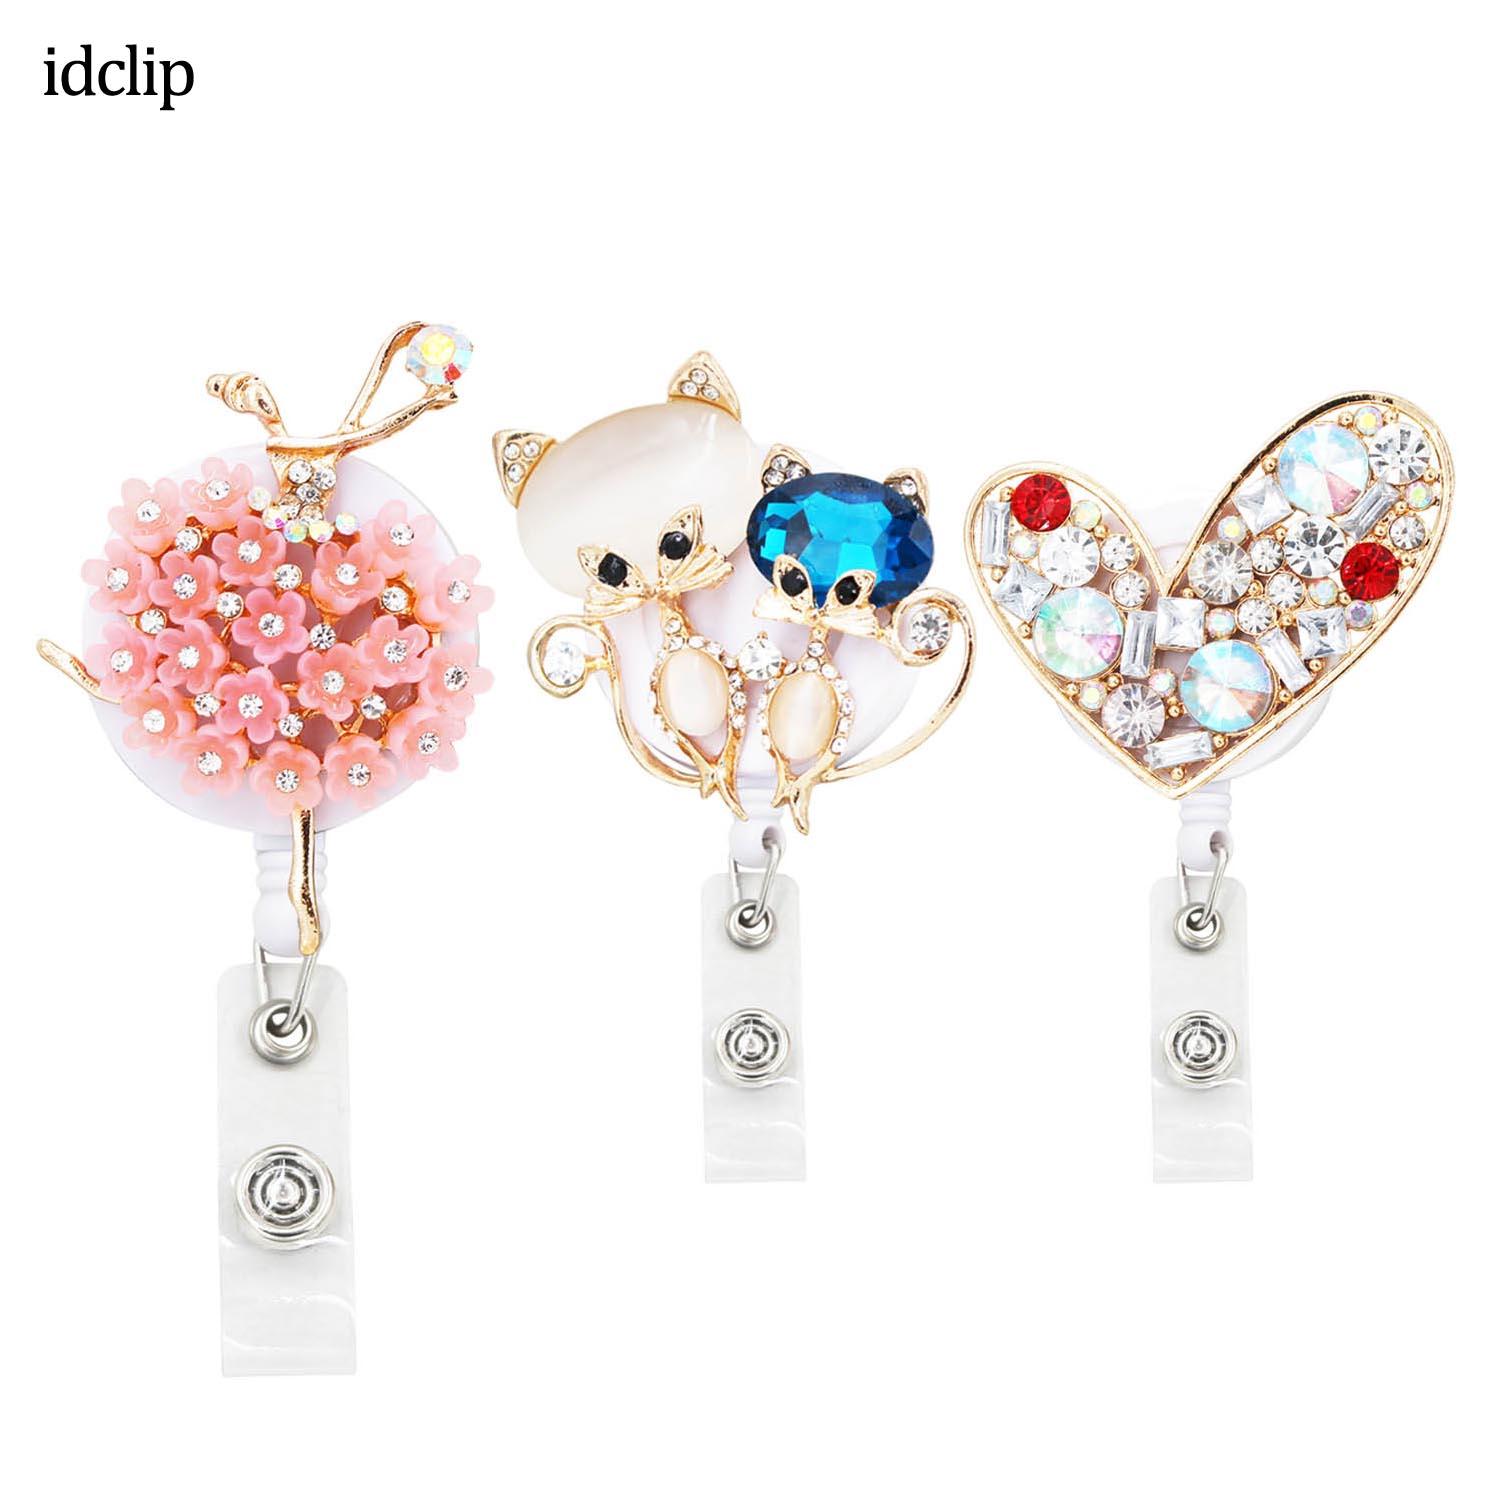 Idclip 3PC Lot Animal ID Retractable Badge Holder With Alligator Clip Retractable Cord ID Badge Reel Fox Dress Girl Horse Style